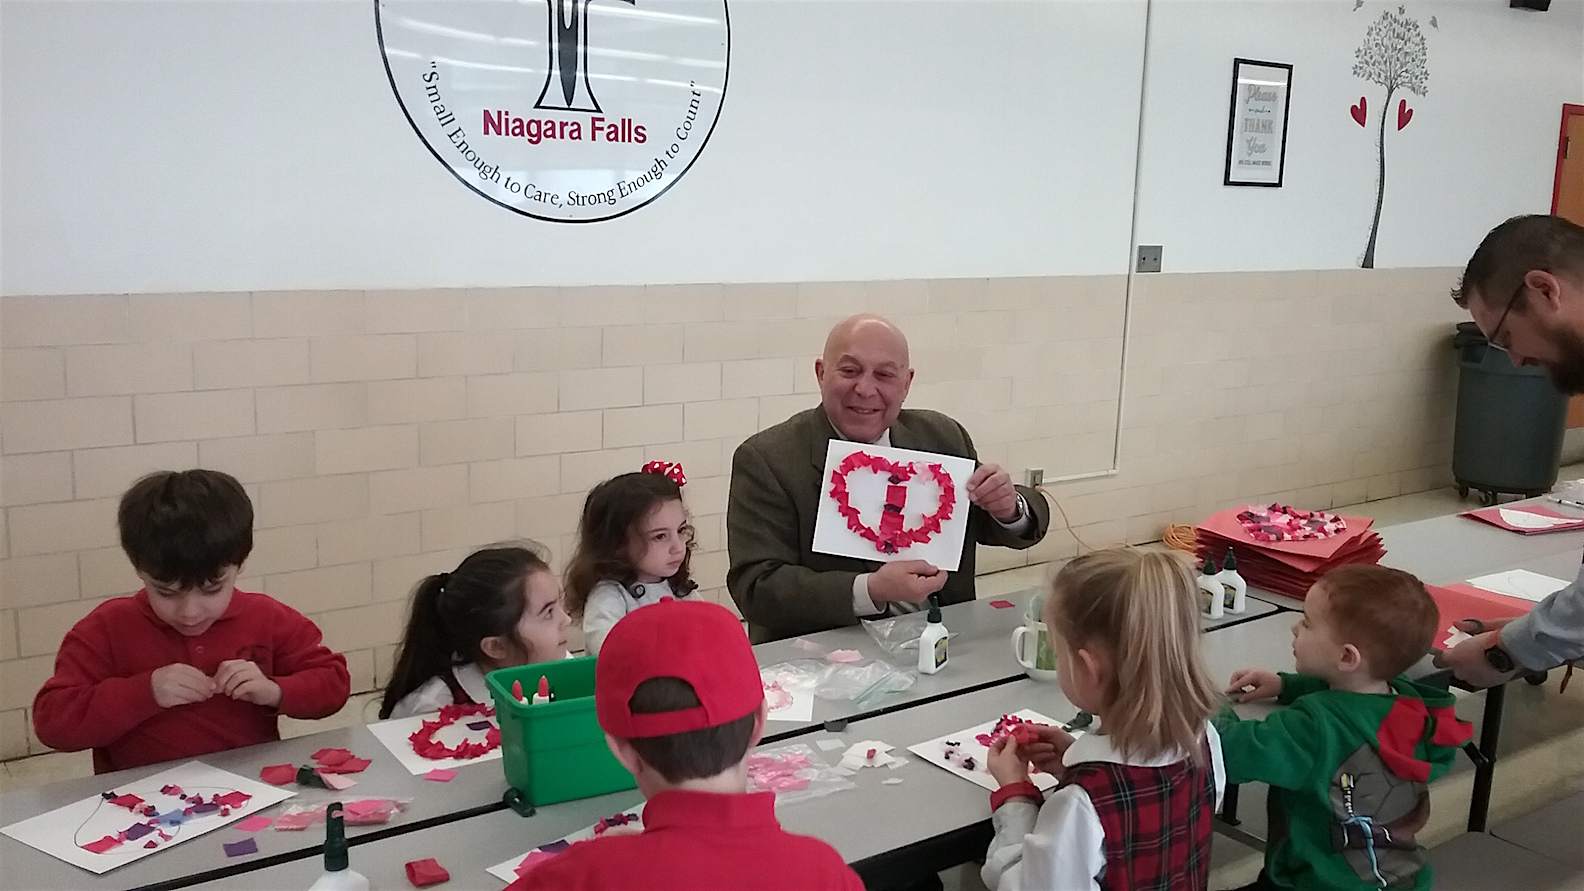 Assemblyman Angelo J. Morinello hosted his first annual `Valentines for Seniors` program at Catholic Academy in Niagara Falls. Pictured around the table, clockwise: Joseph Dzielski, Ryker, Ella, John, Brayden, Samantha, Audrey and Morinello.